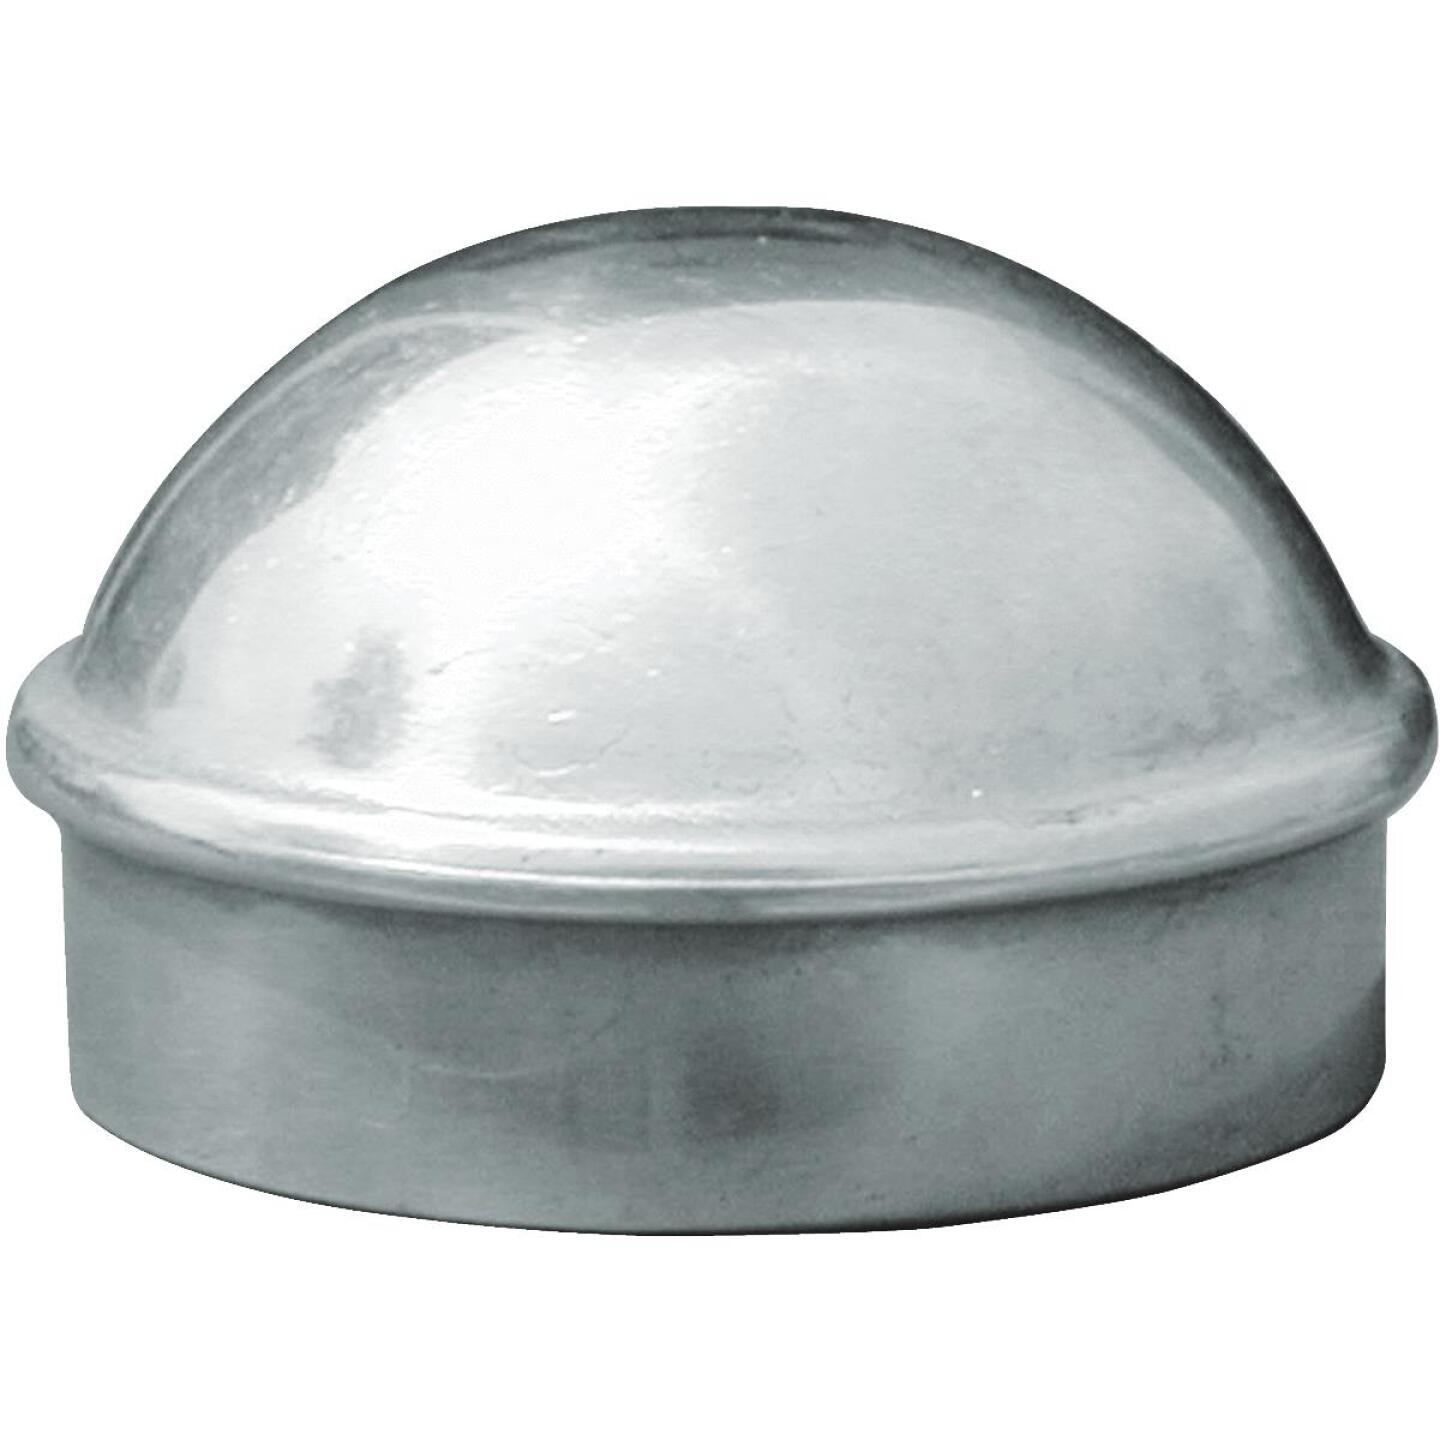 Midwest Air Tech Rounded Post 1-5/8 in. Aluminum Cap Image 1